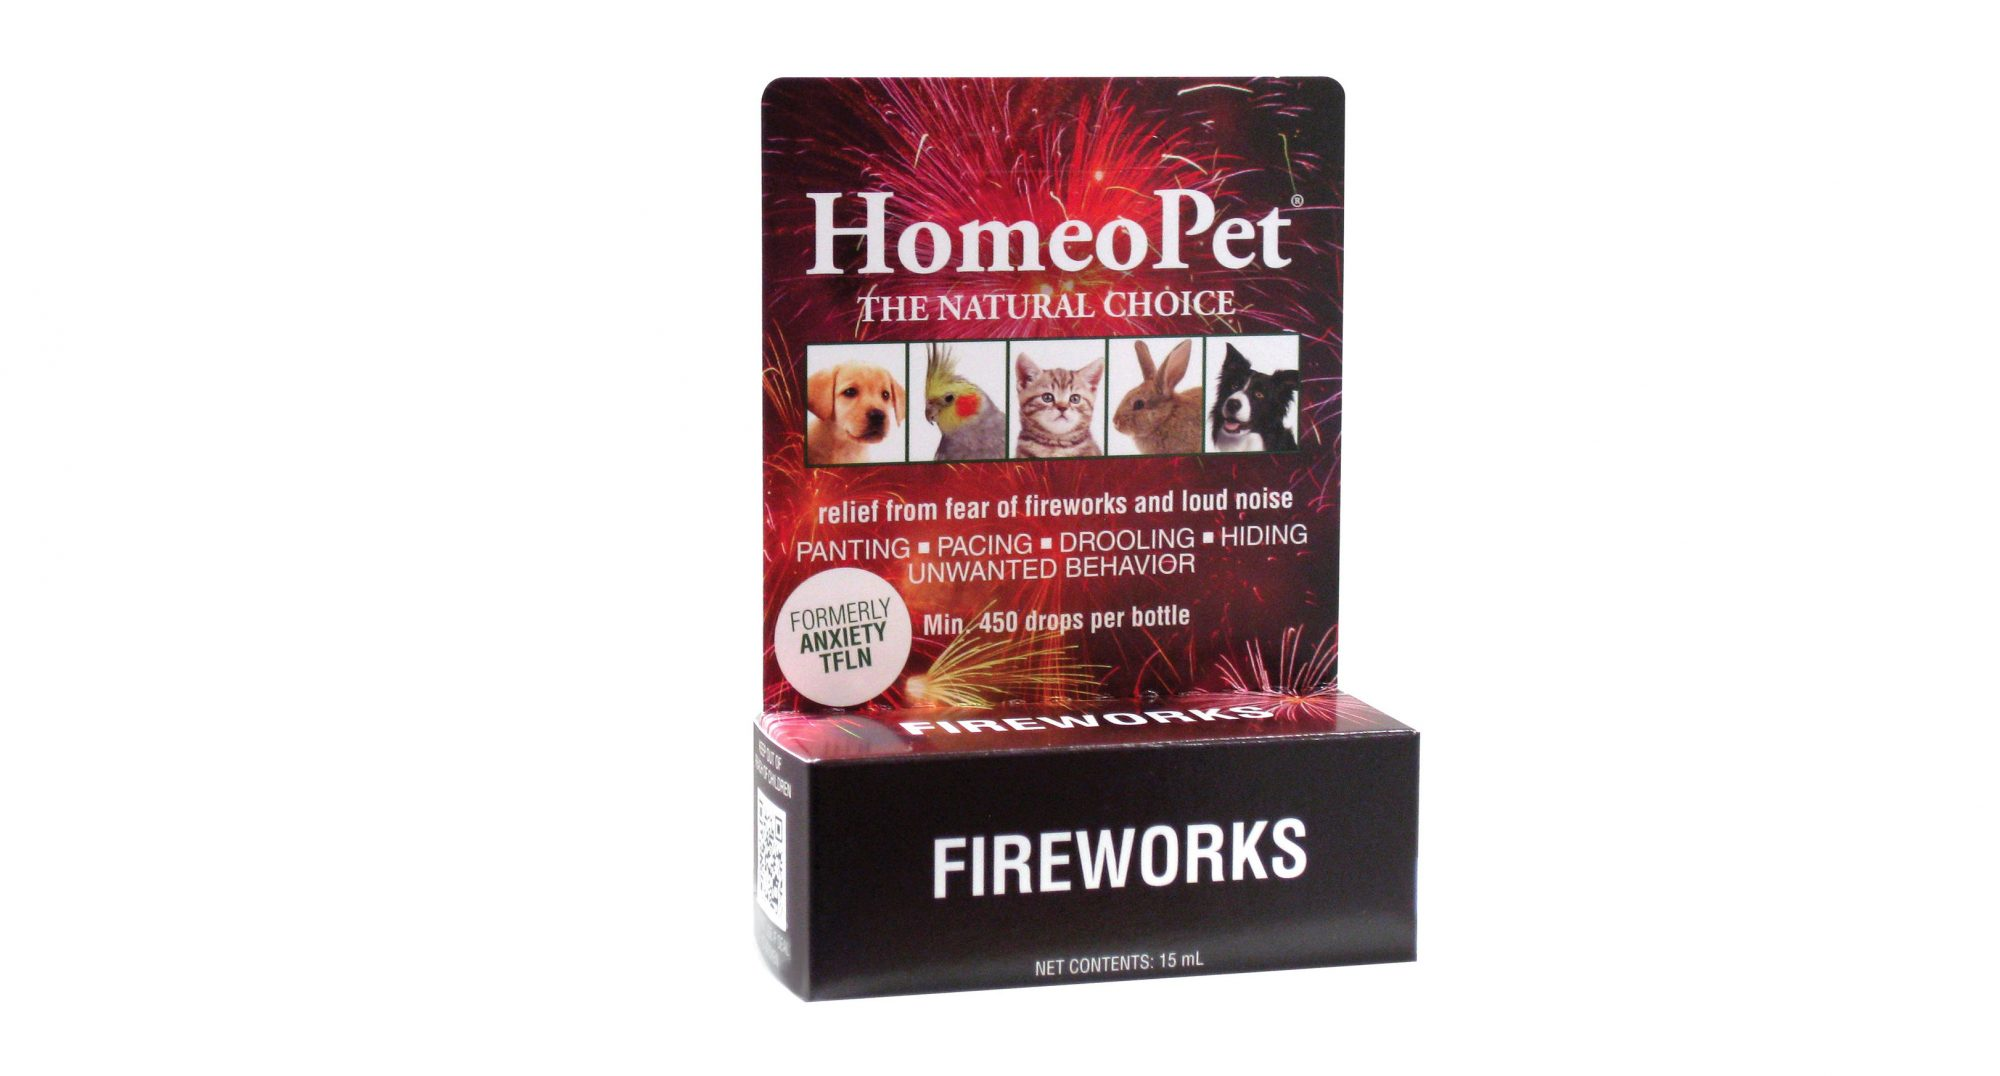 10 Calming Products to Help Your Dog Combat Fireworks Anxiety on Fourth of July